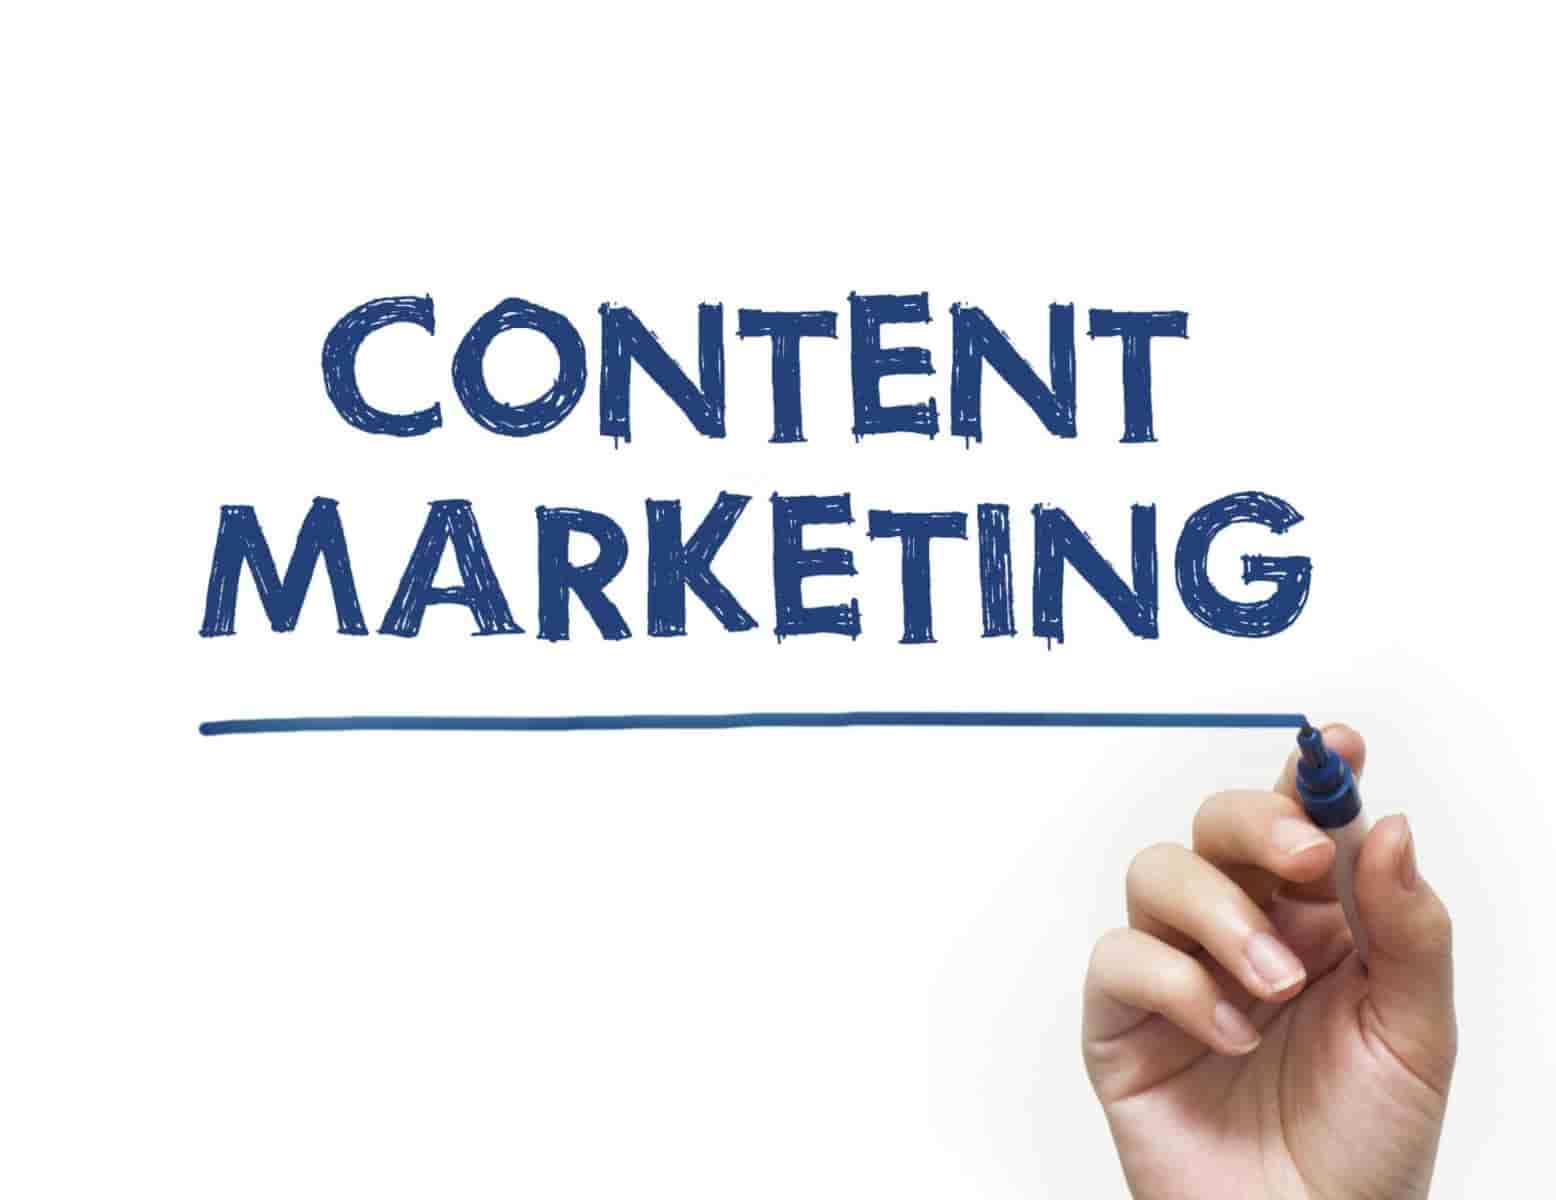 Content Marketing Hải Phòng